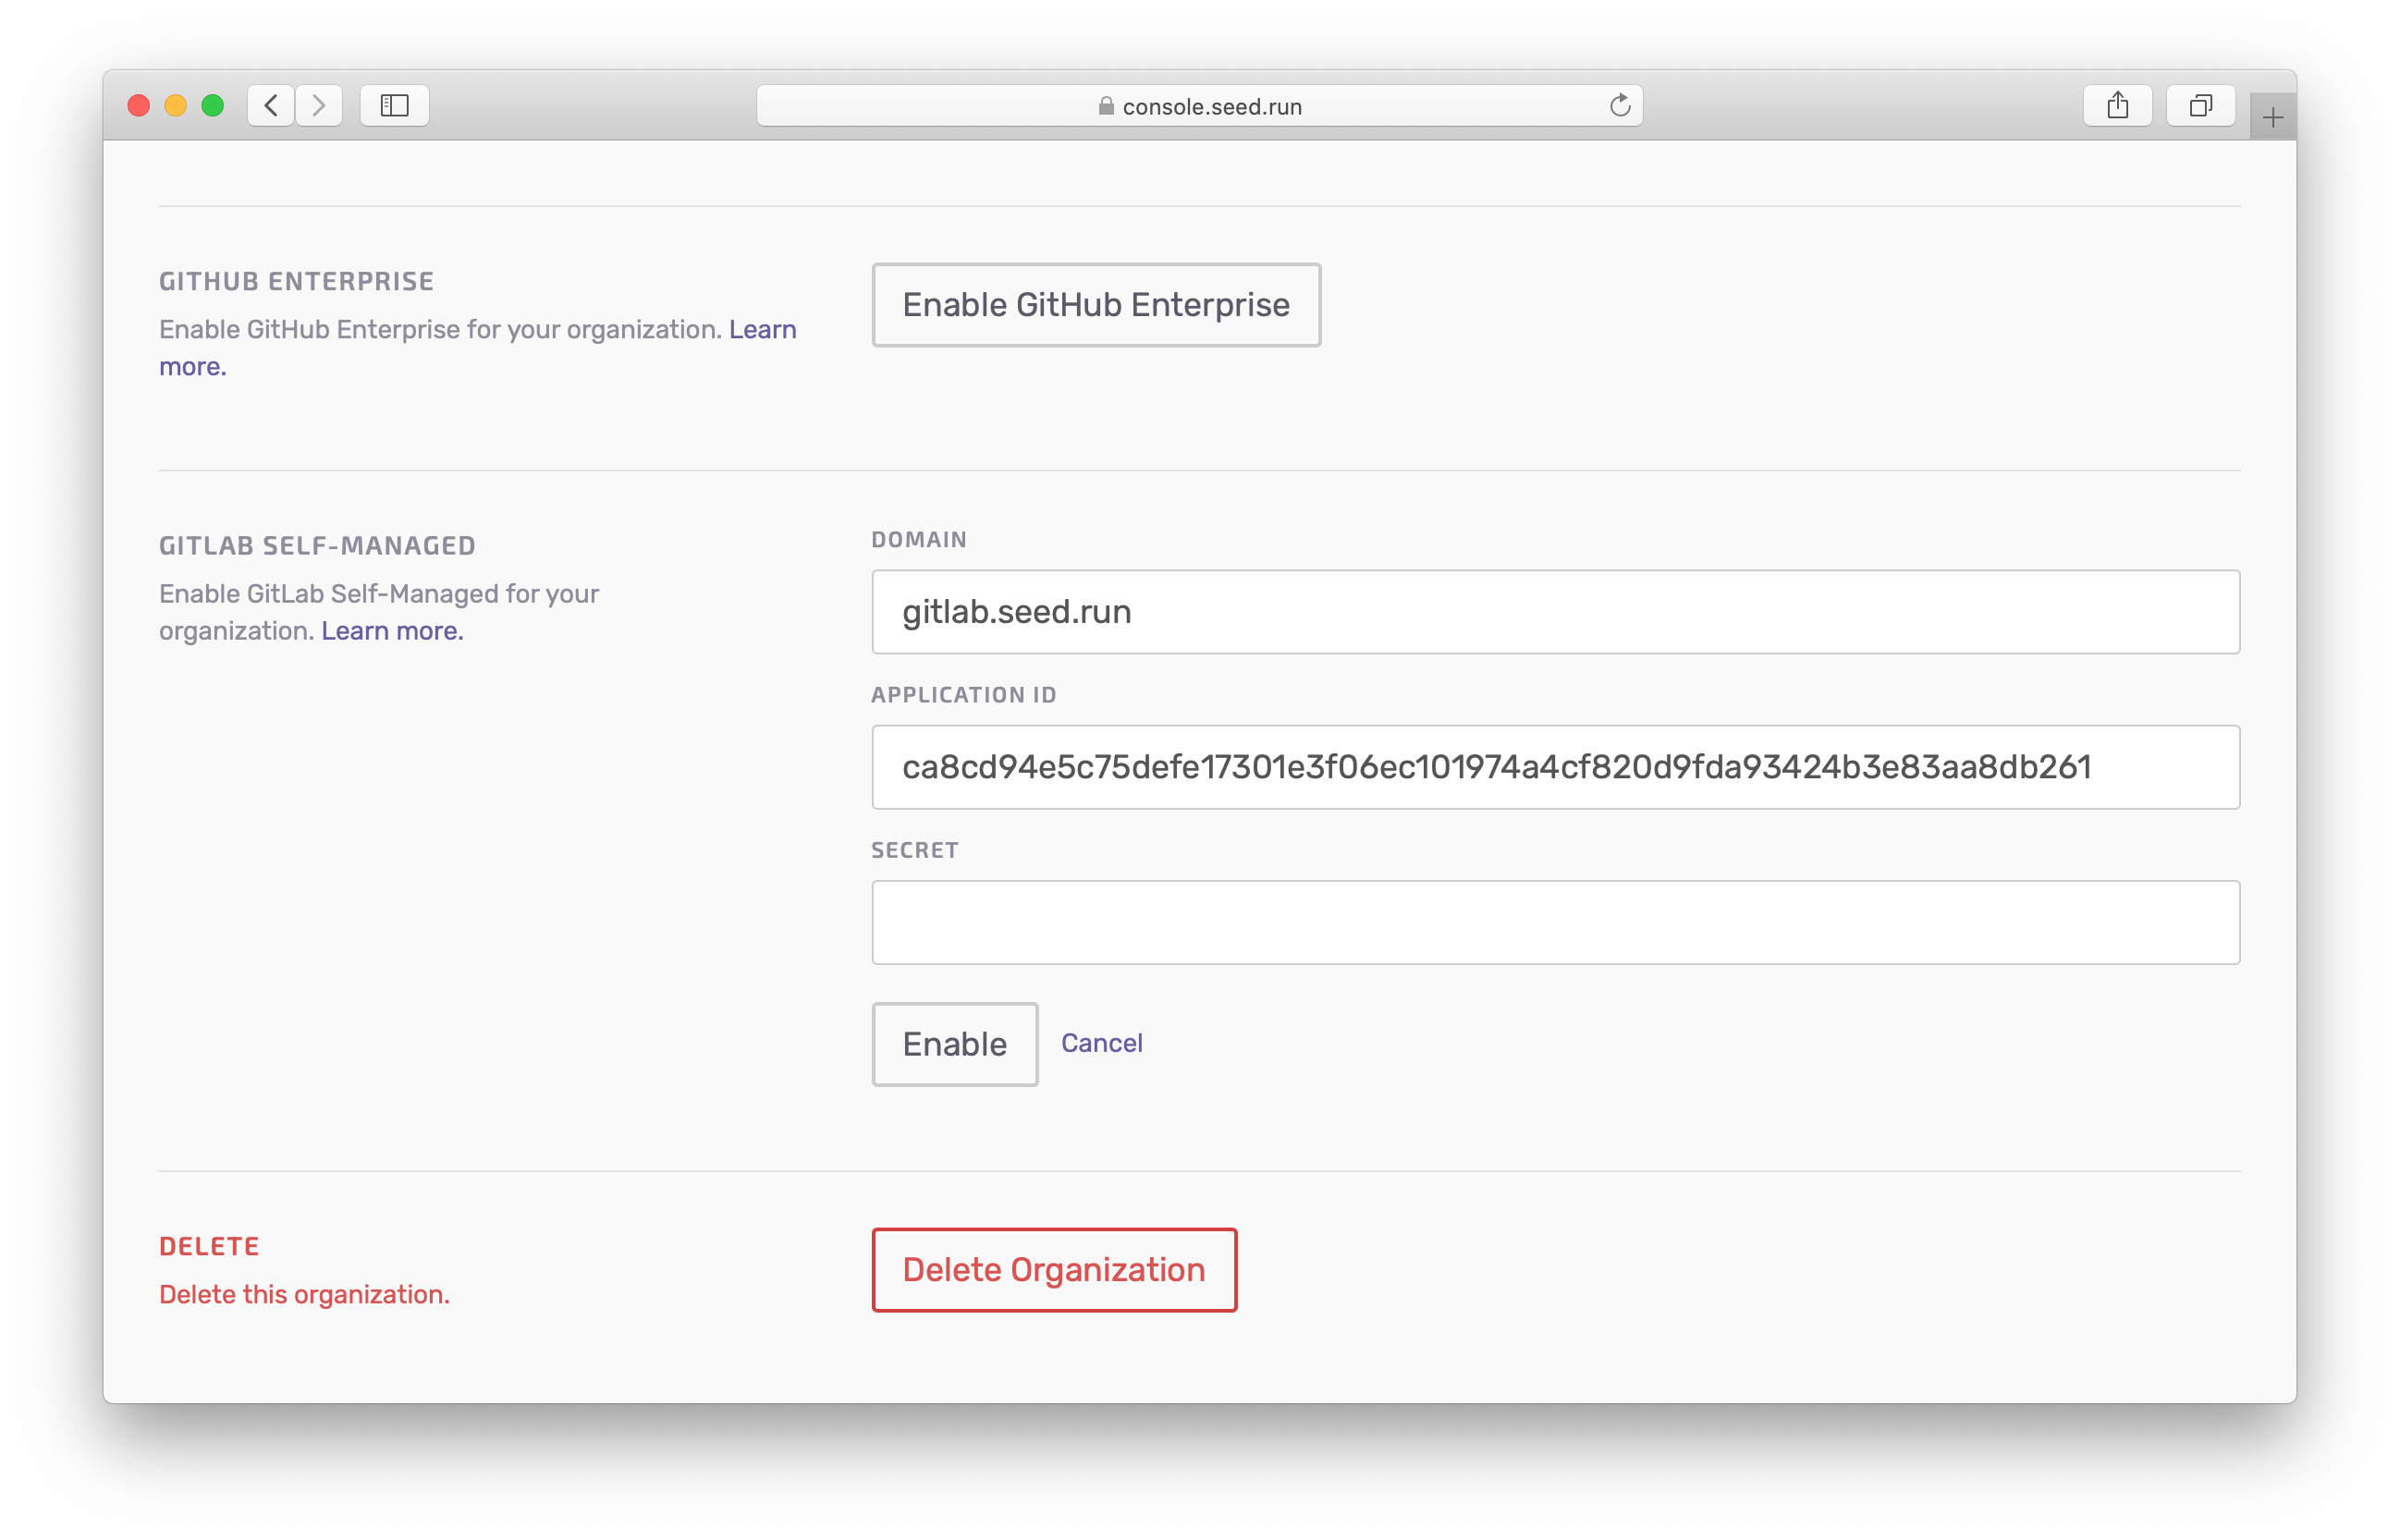 Enabled GitLab Self-Managed on Seed